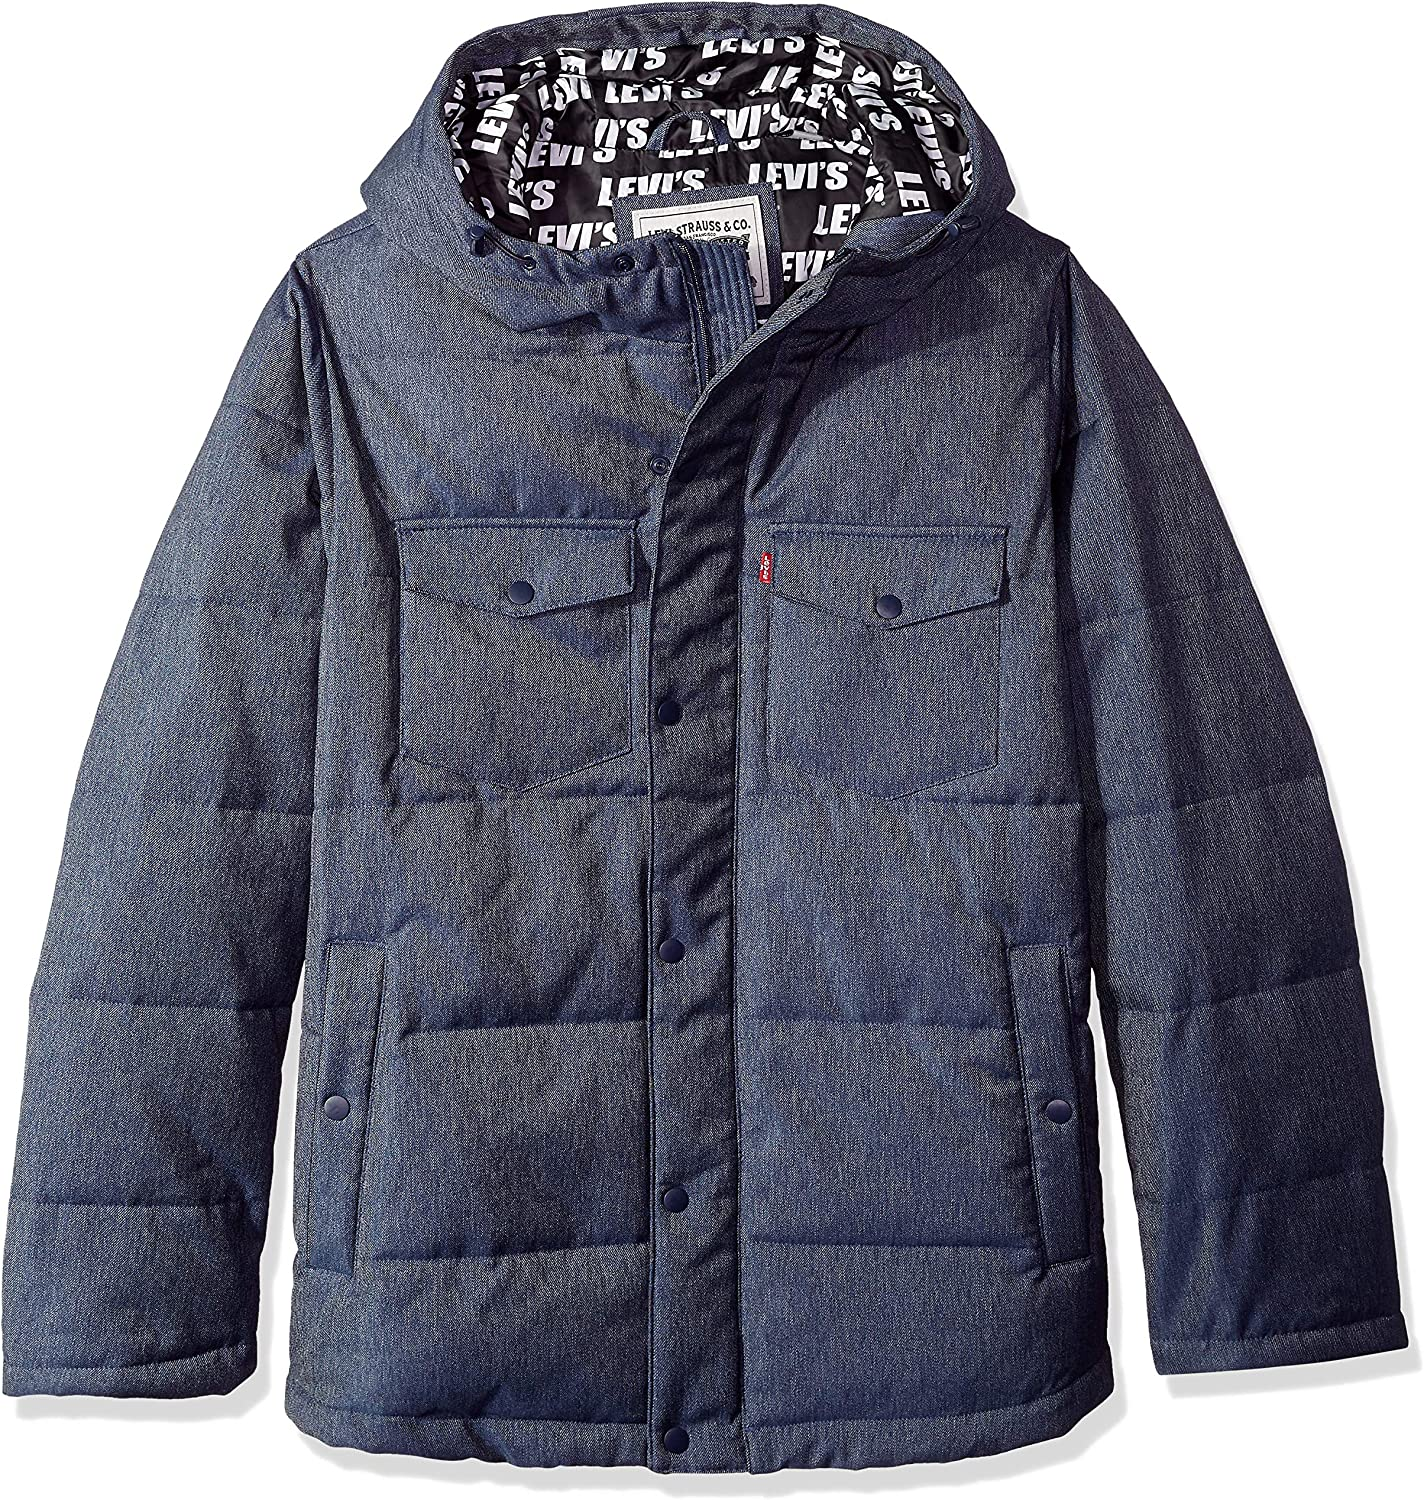 Levi's Men's Big and Tall Our shop At the price most popular Quilted Jacket Hoody Repeat Puffer Log